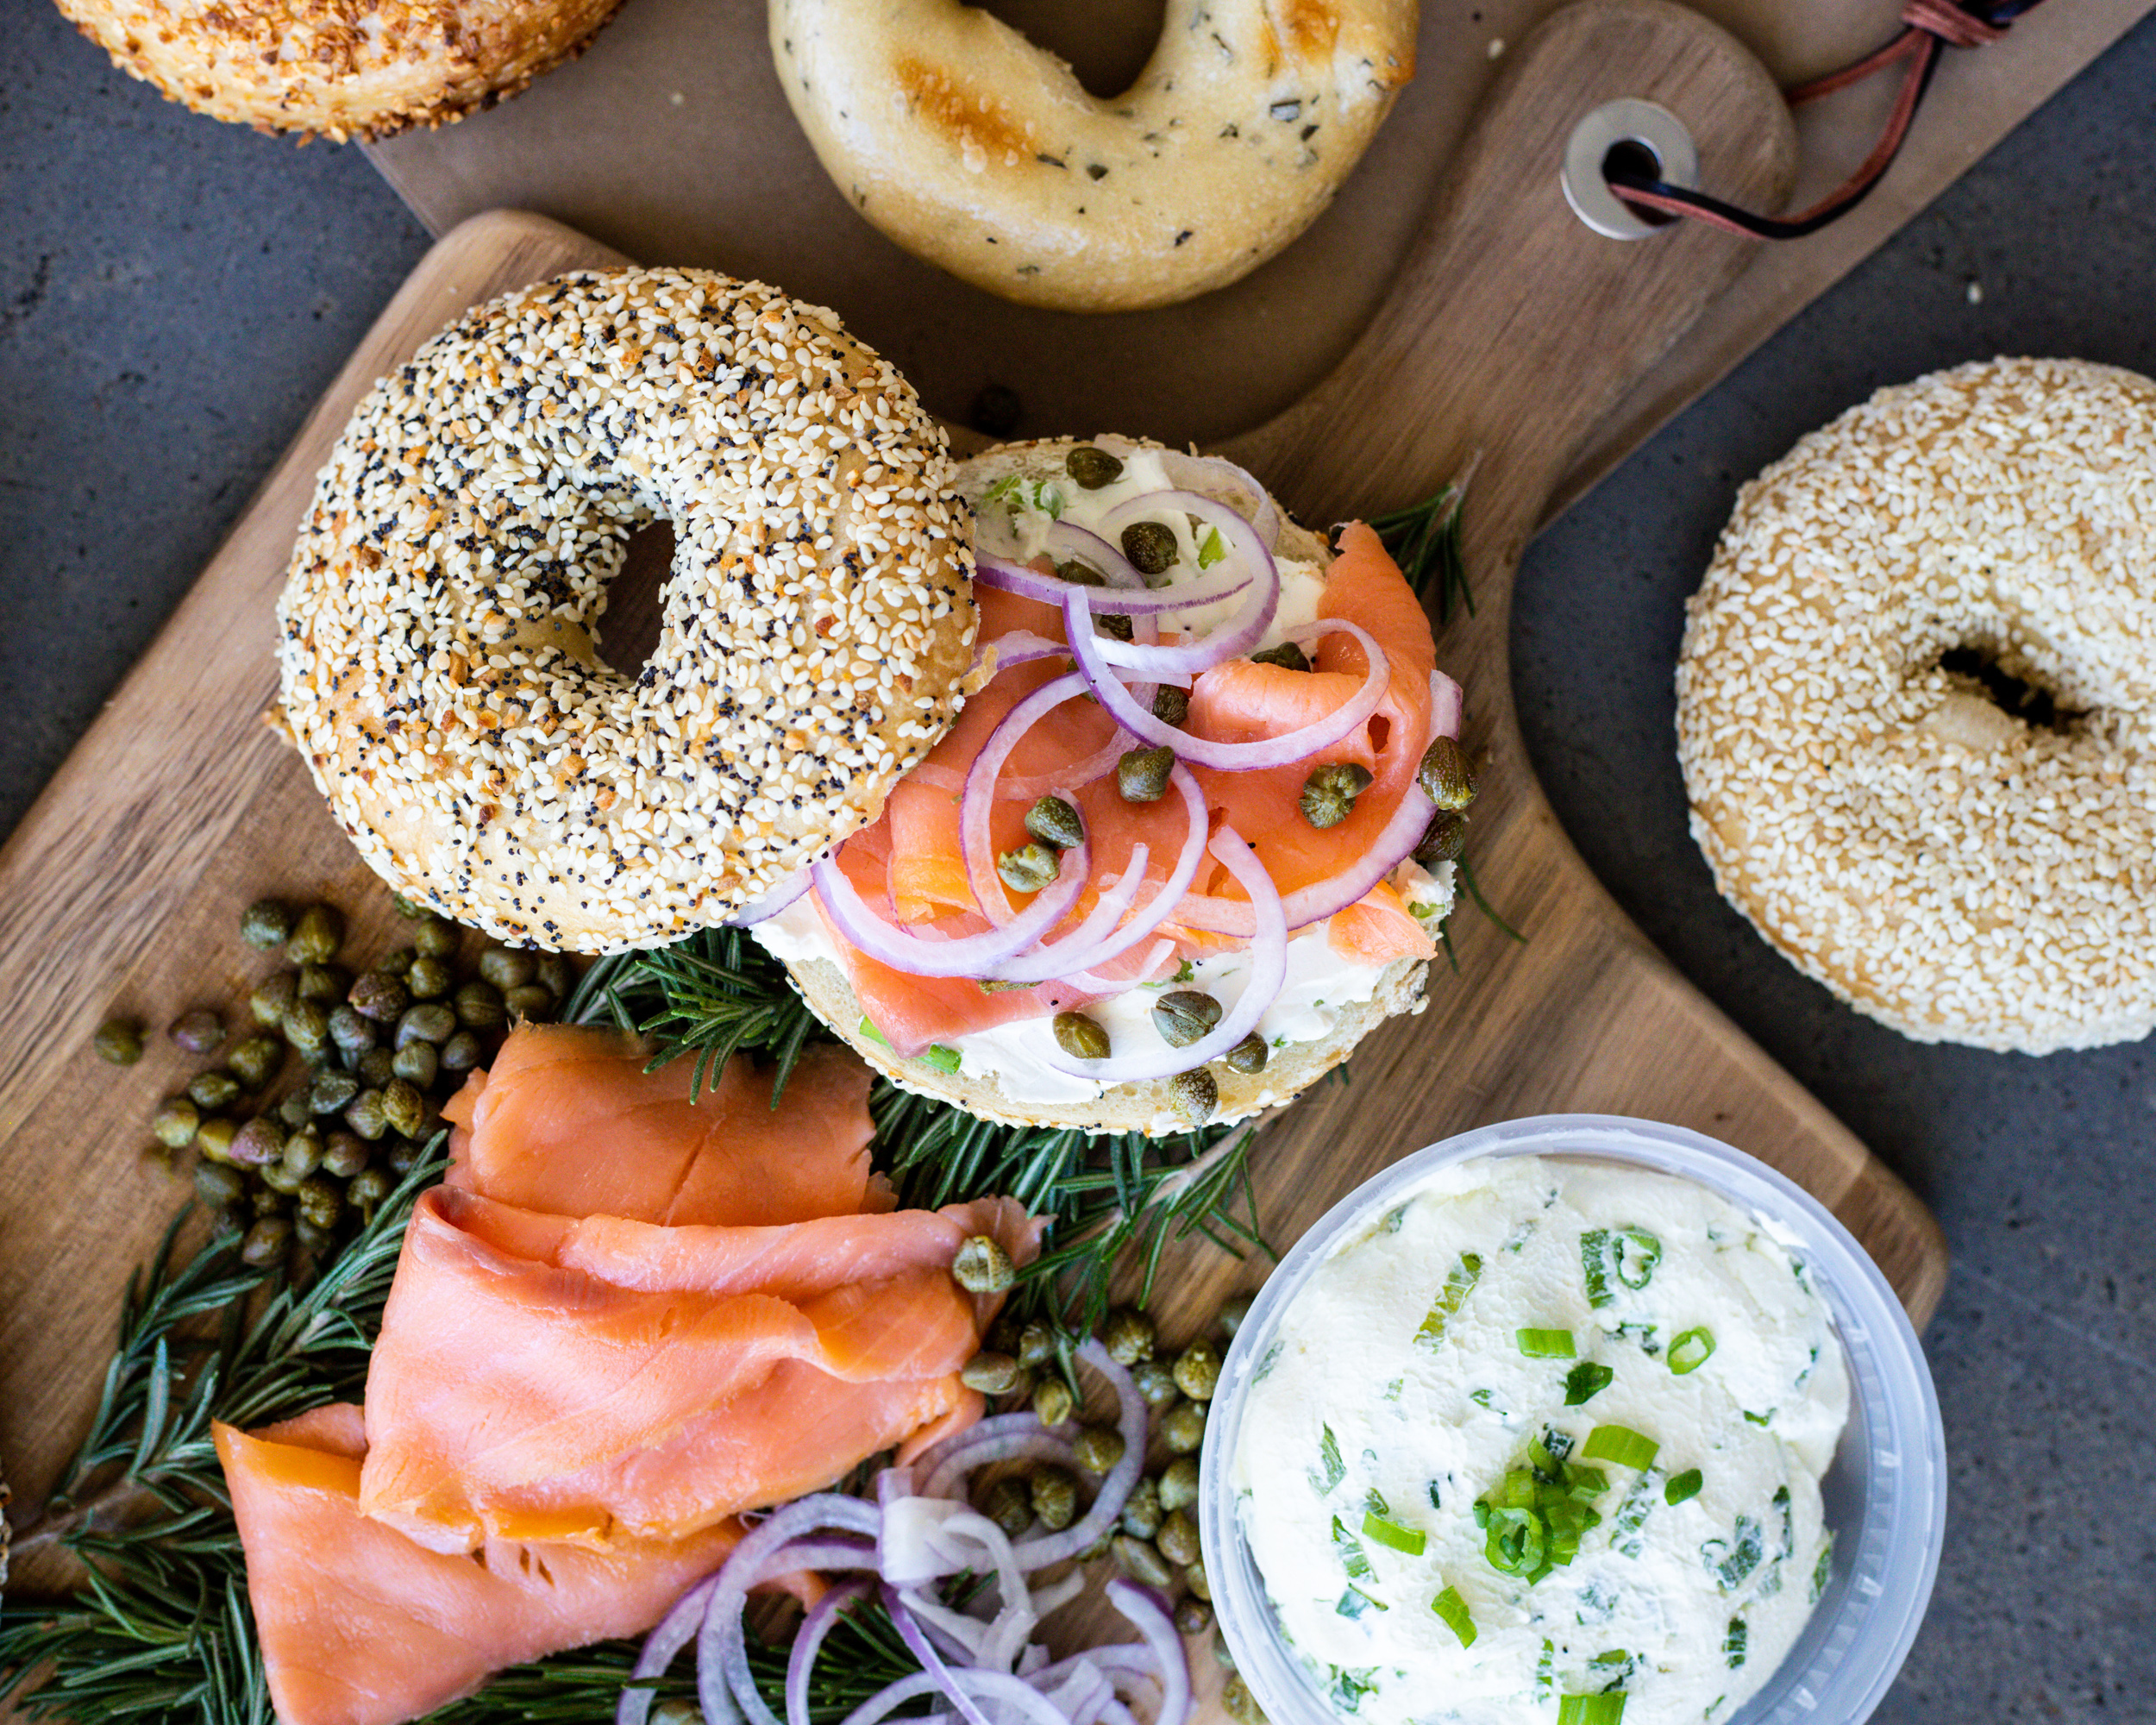 A bagel with cream cheese and lox from Rosen's